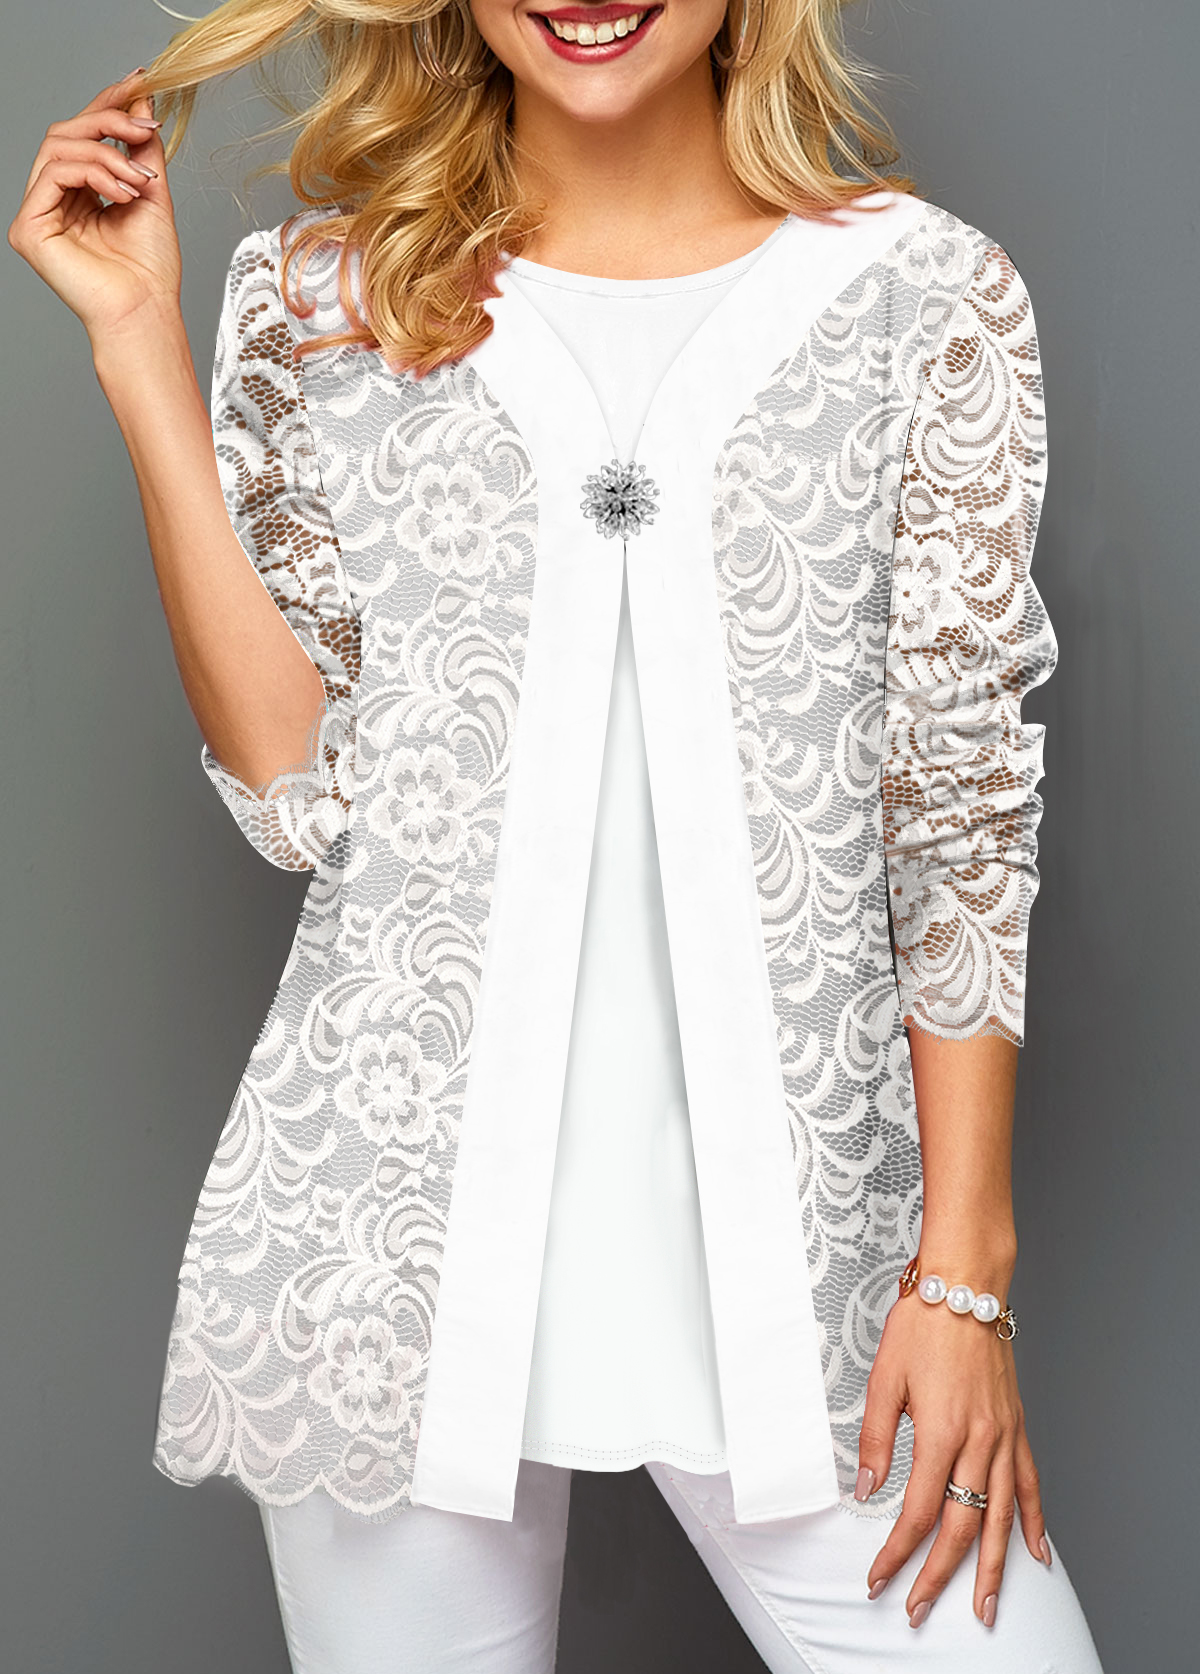 Decorated Button Faux Two Piece White Lace T Shirt